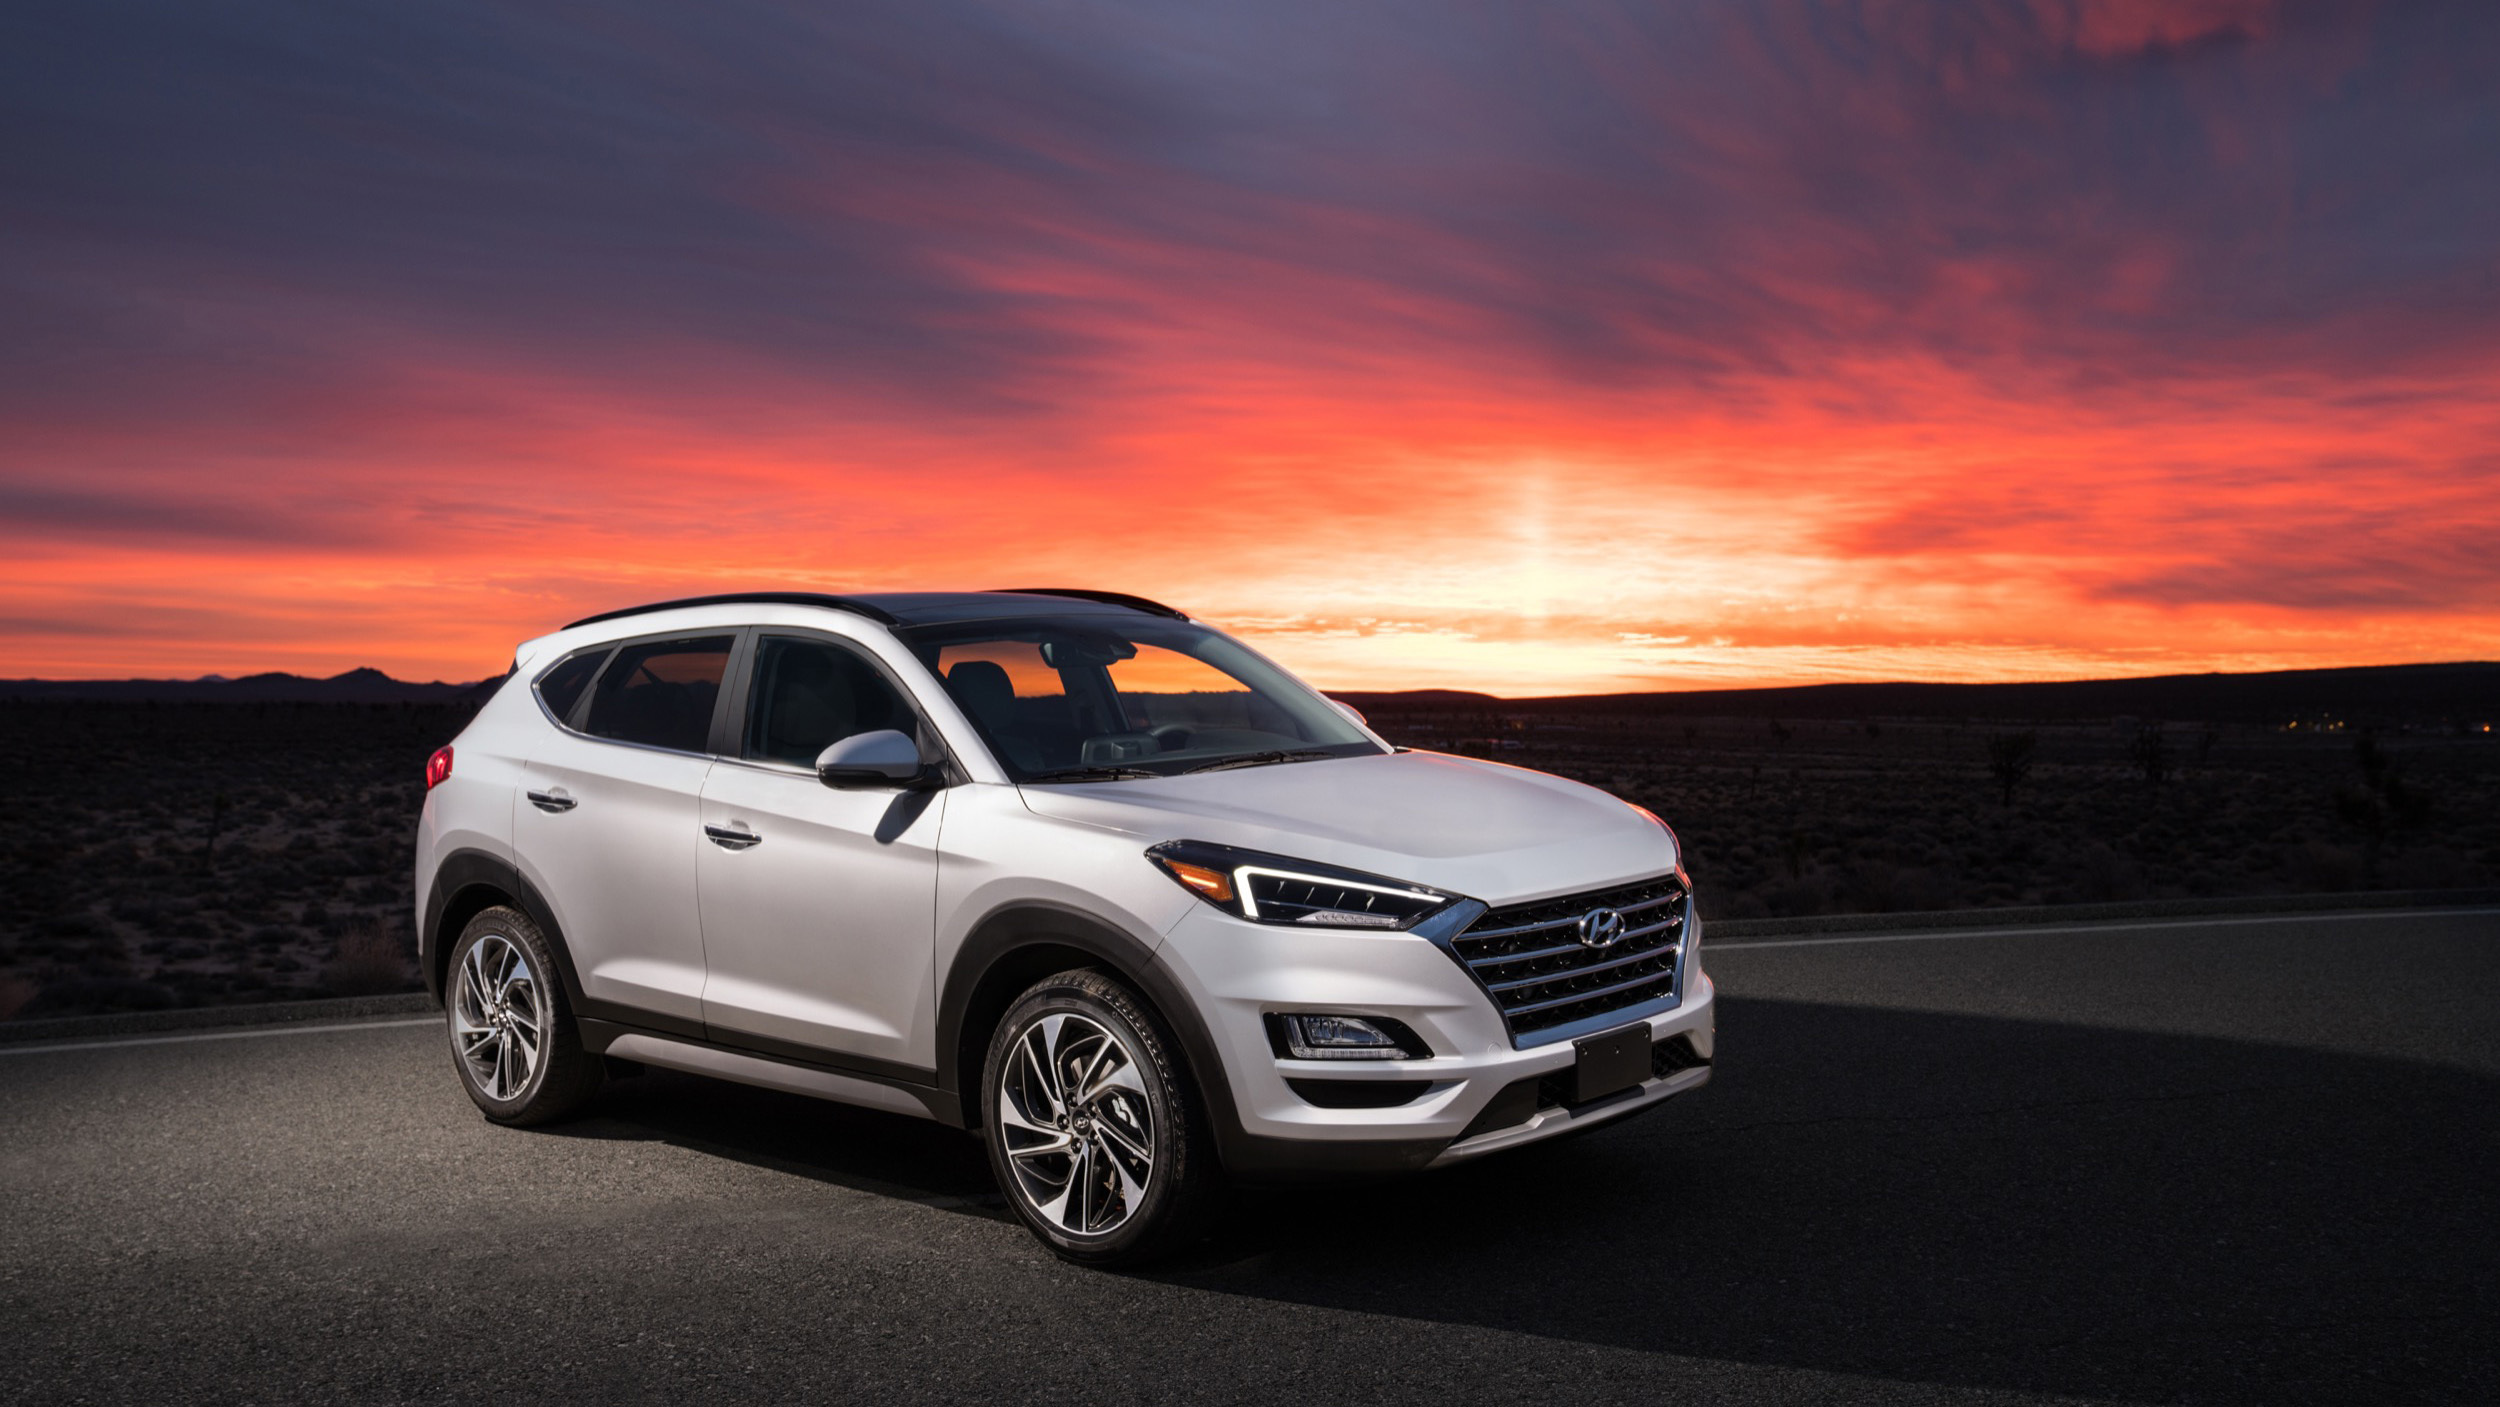 2020 Hyundai Tucson Redesign, Release Date >> 2020 Hyundai Tucson Reviews Price Specs Features And